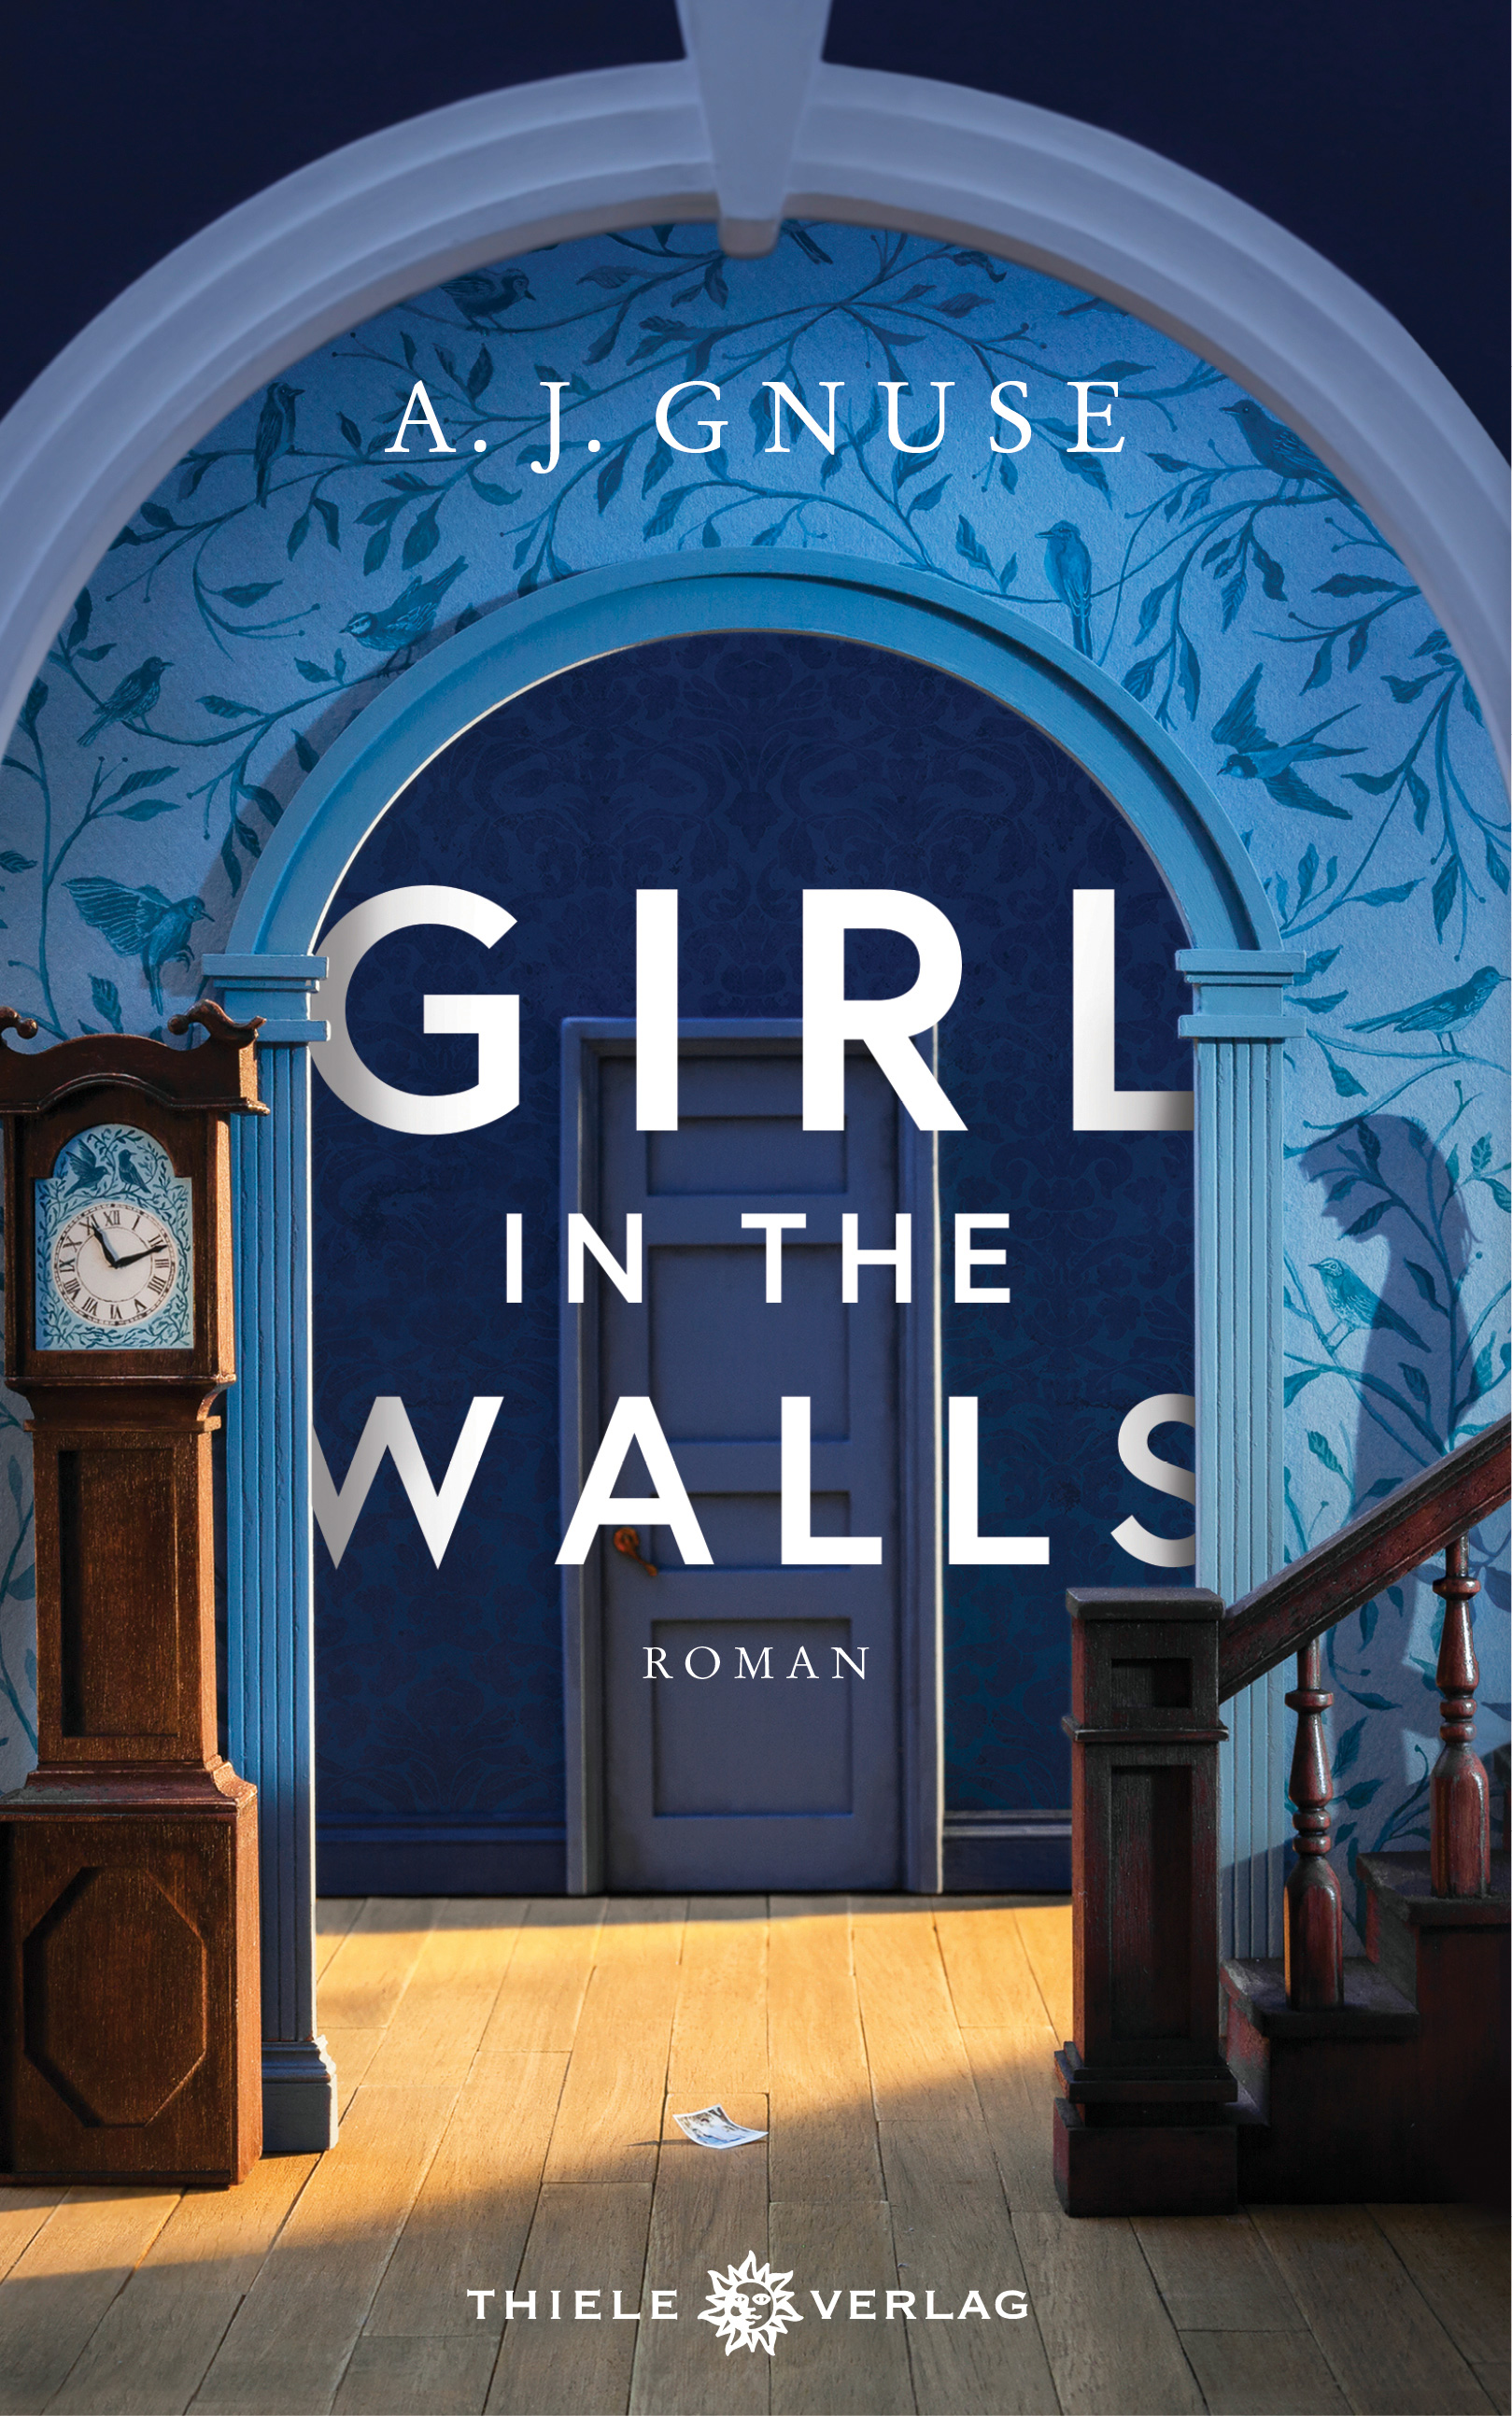 A. J. Gnuse, GIRL IN THE WALLS